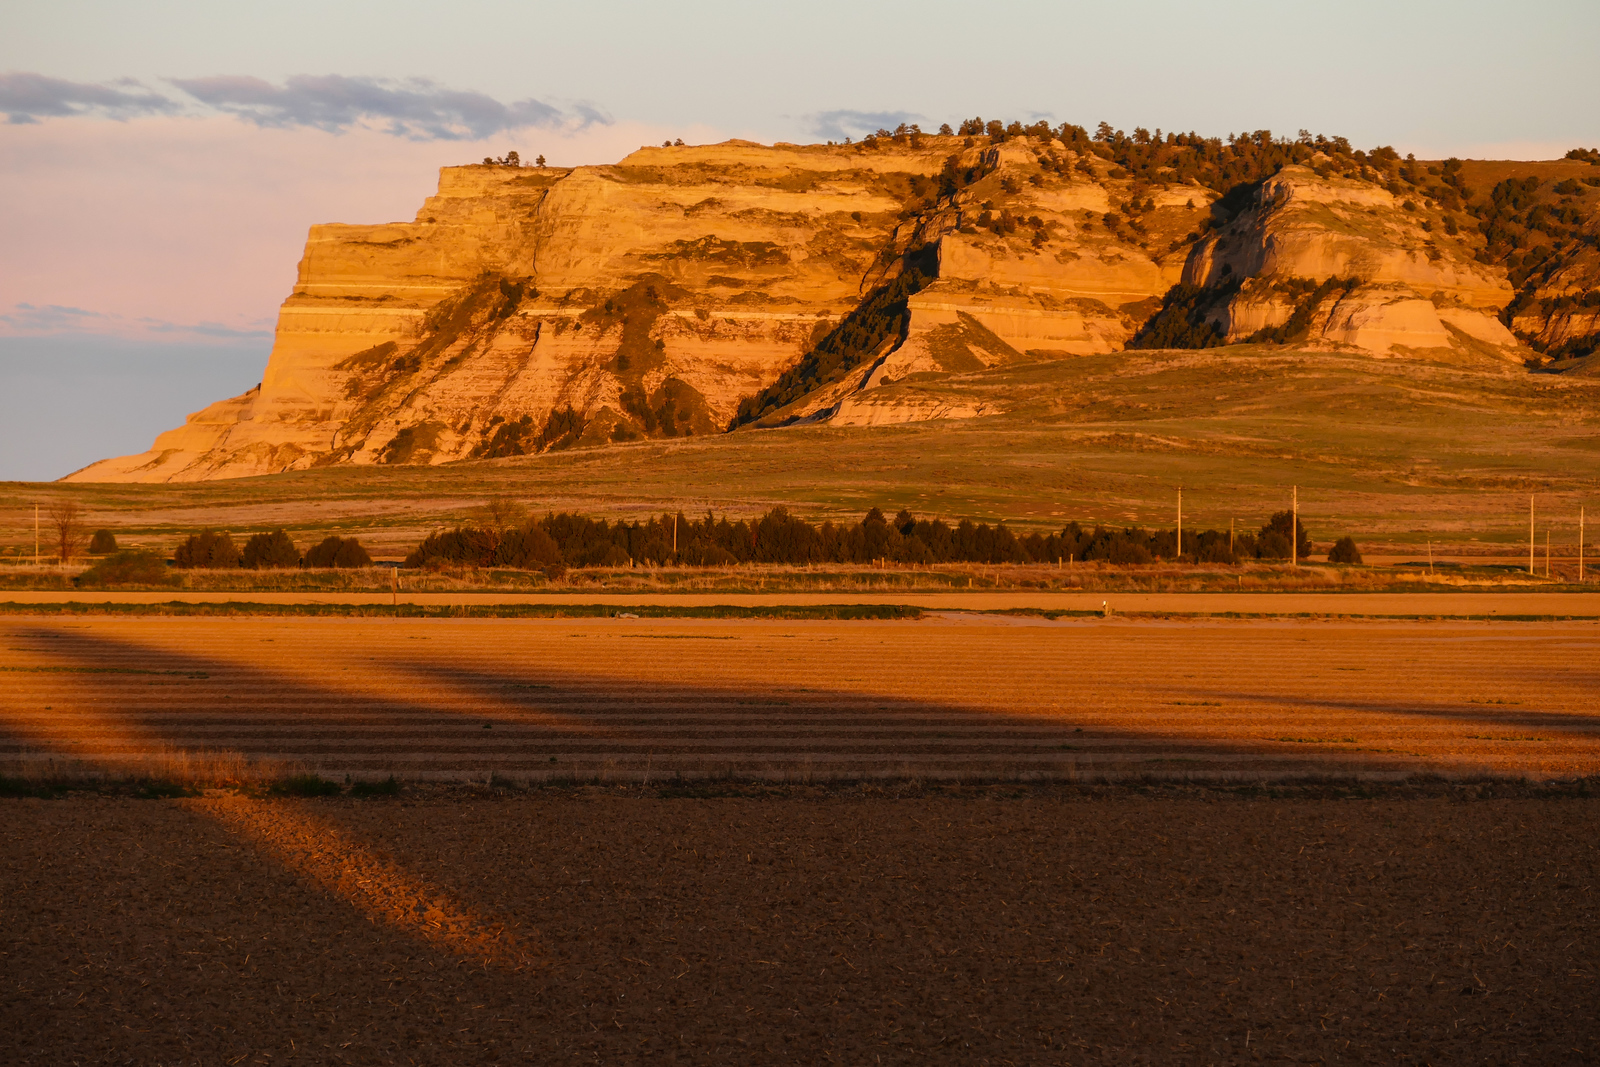 A sunset paints the bluffs orange at Scotts Bluff National Monument.